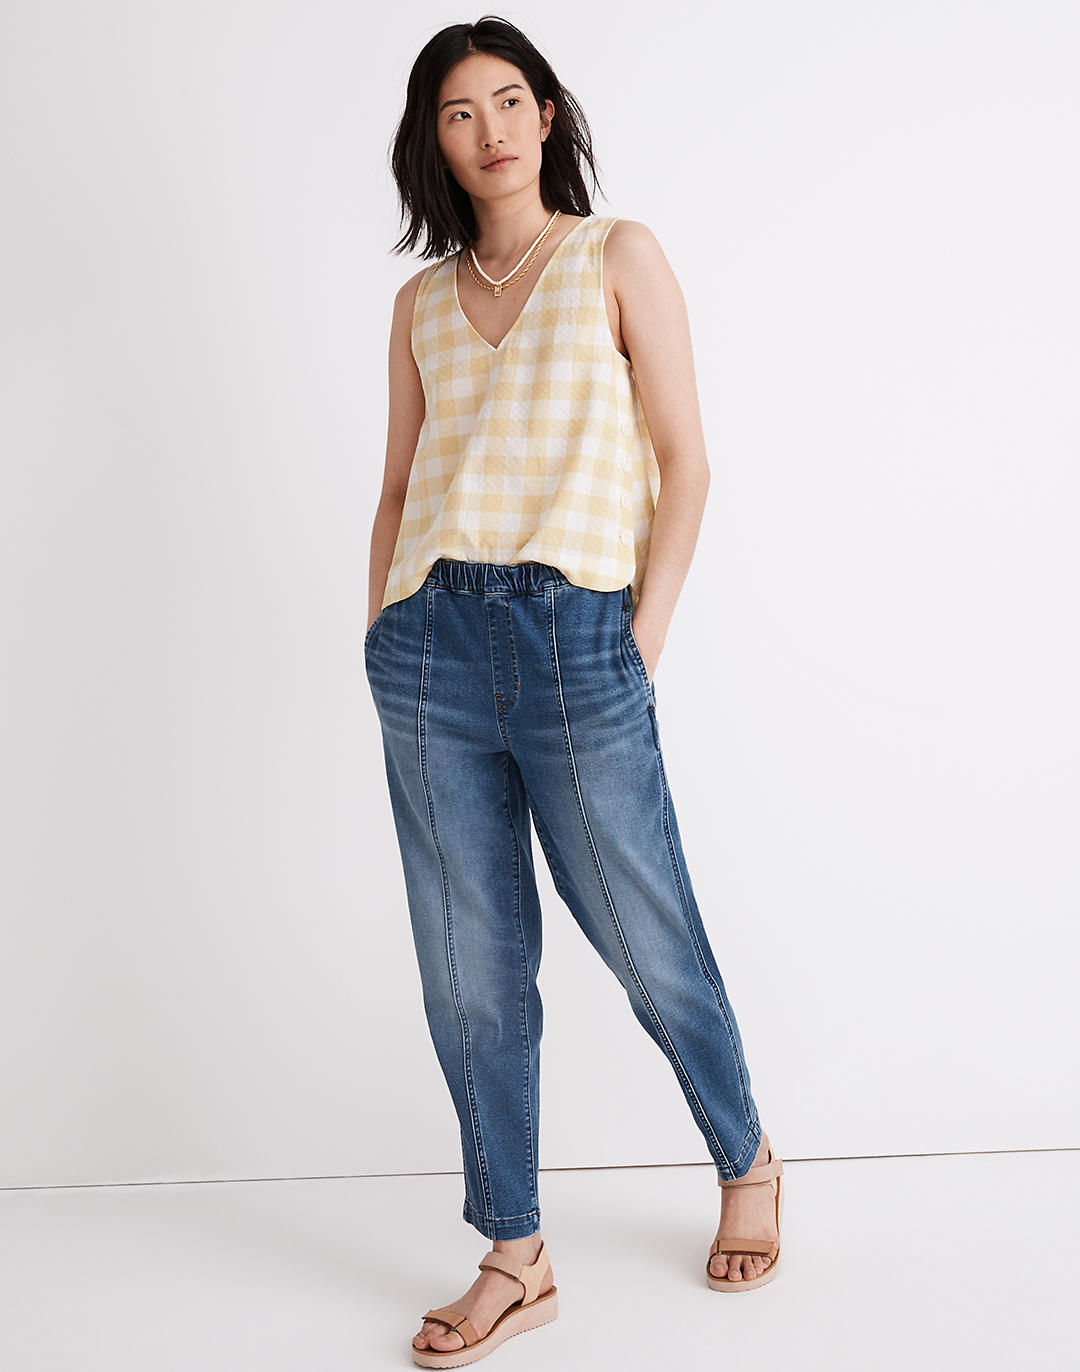 Pull-On Relaxed Jeans in Caville Wash: Seamed Edition in caville wash image 1